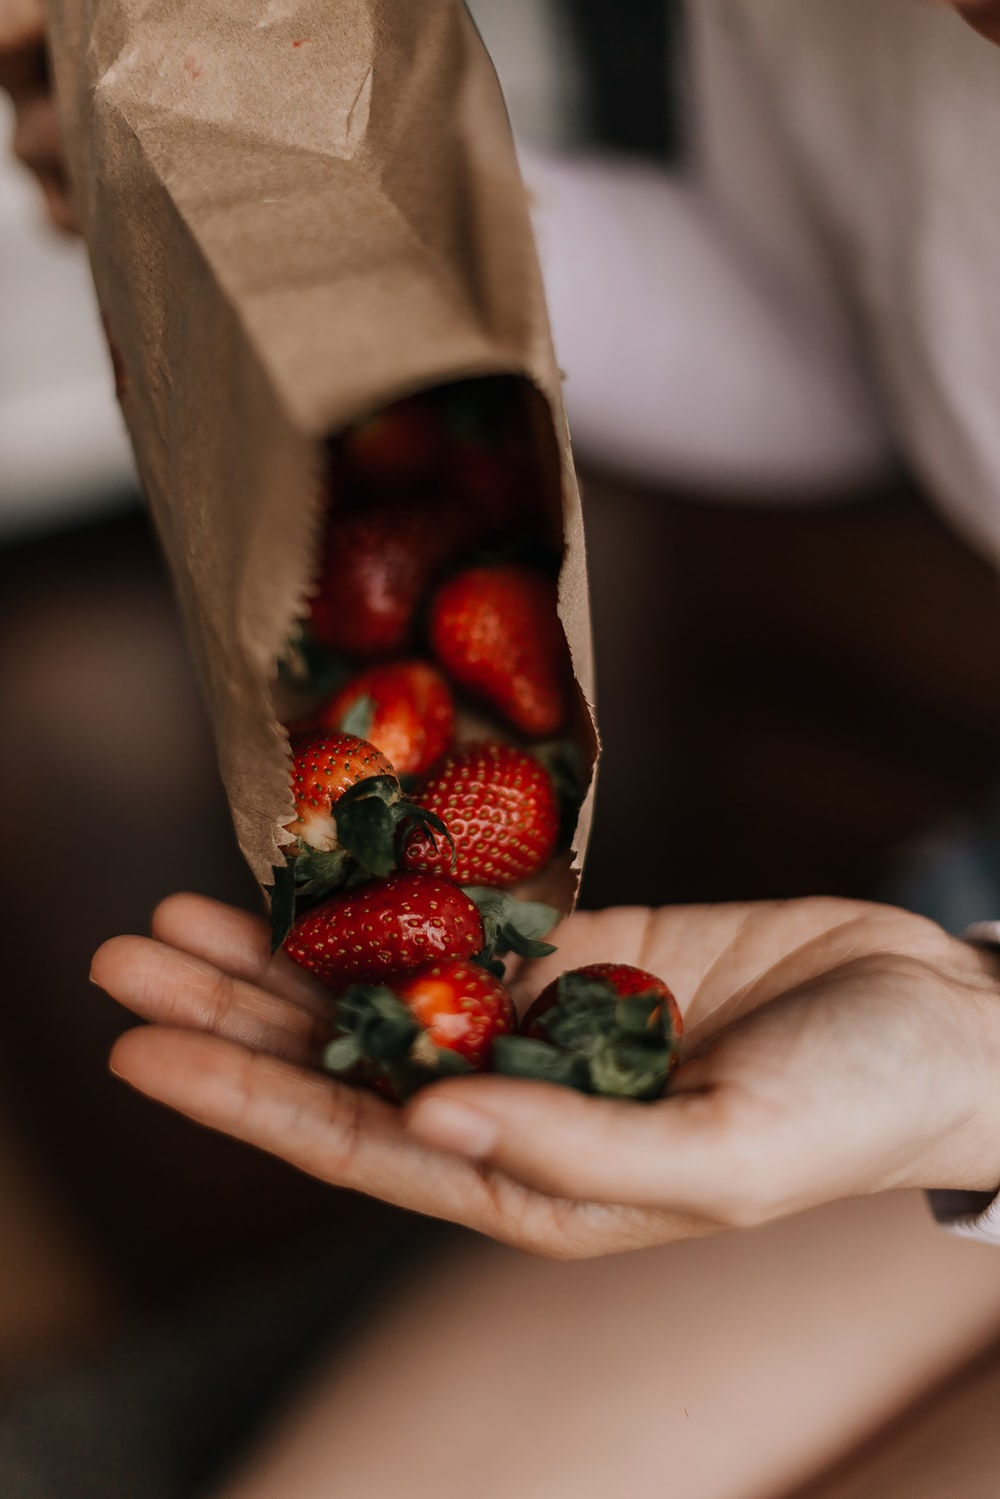 person holding red and green fruits